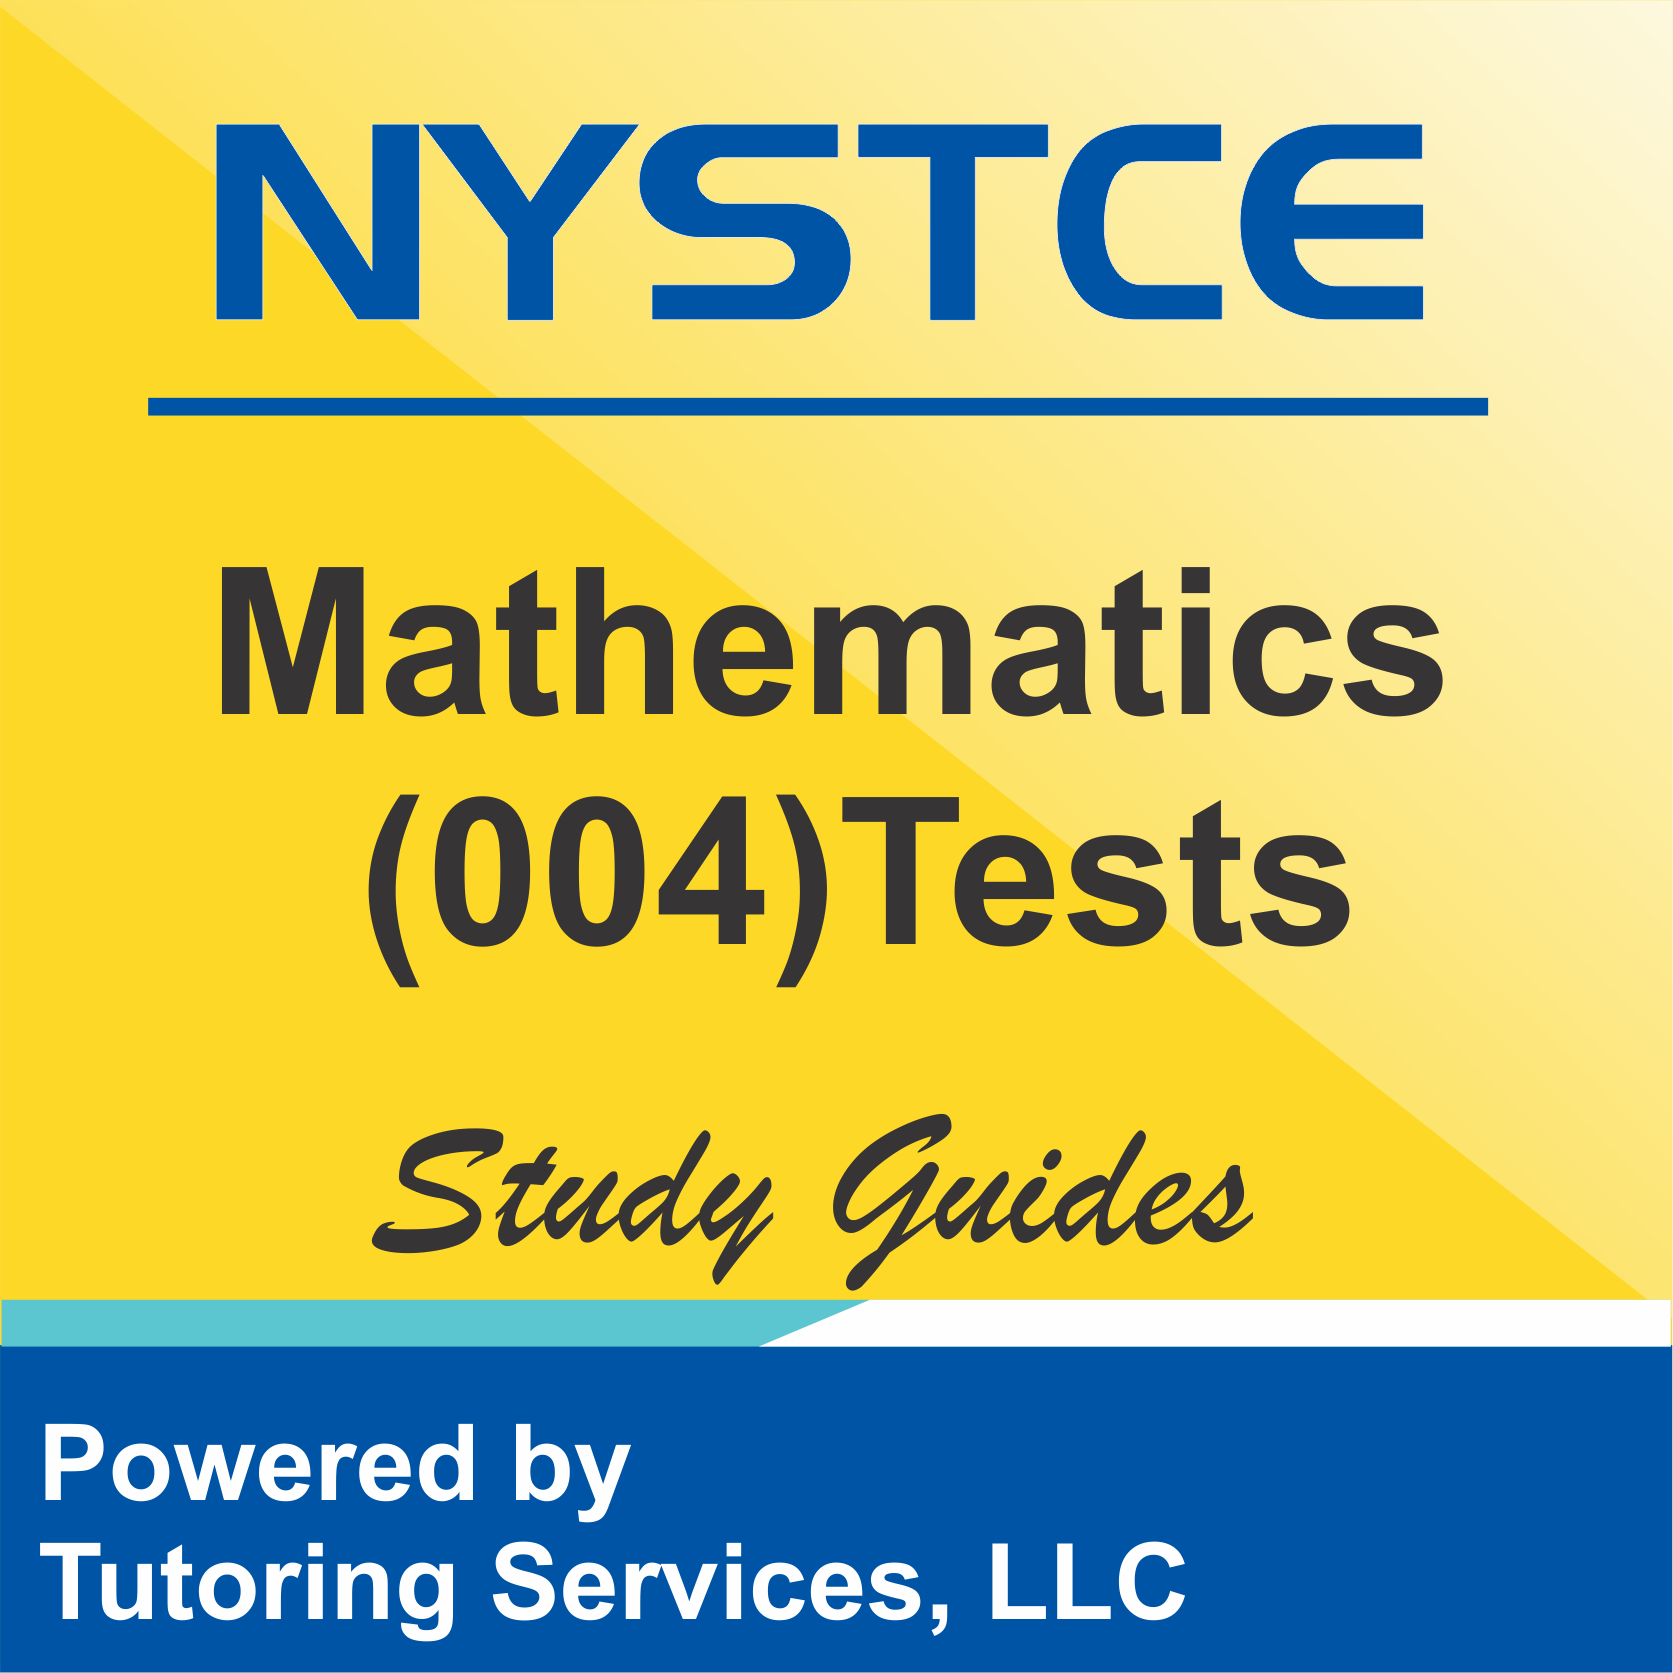 NYSTCE New York Licensure Test Facts for Mathematics 004